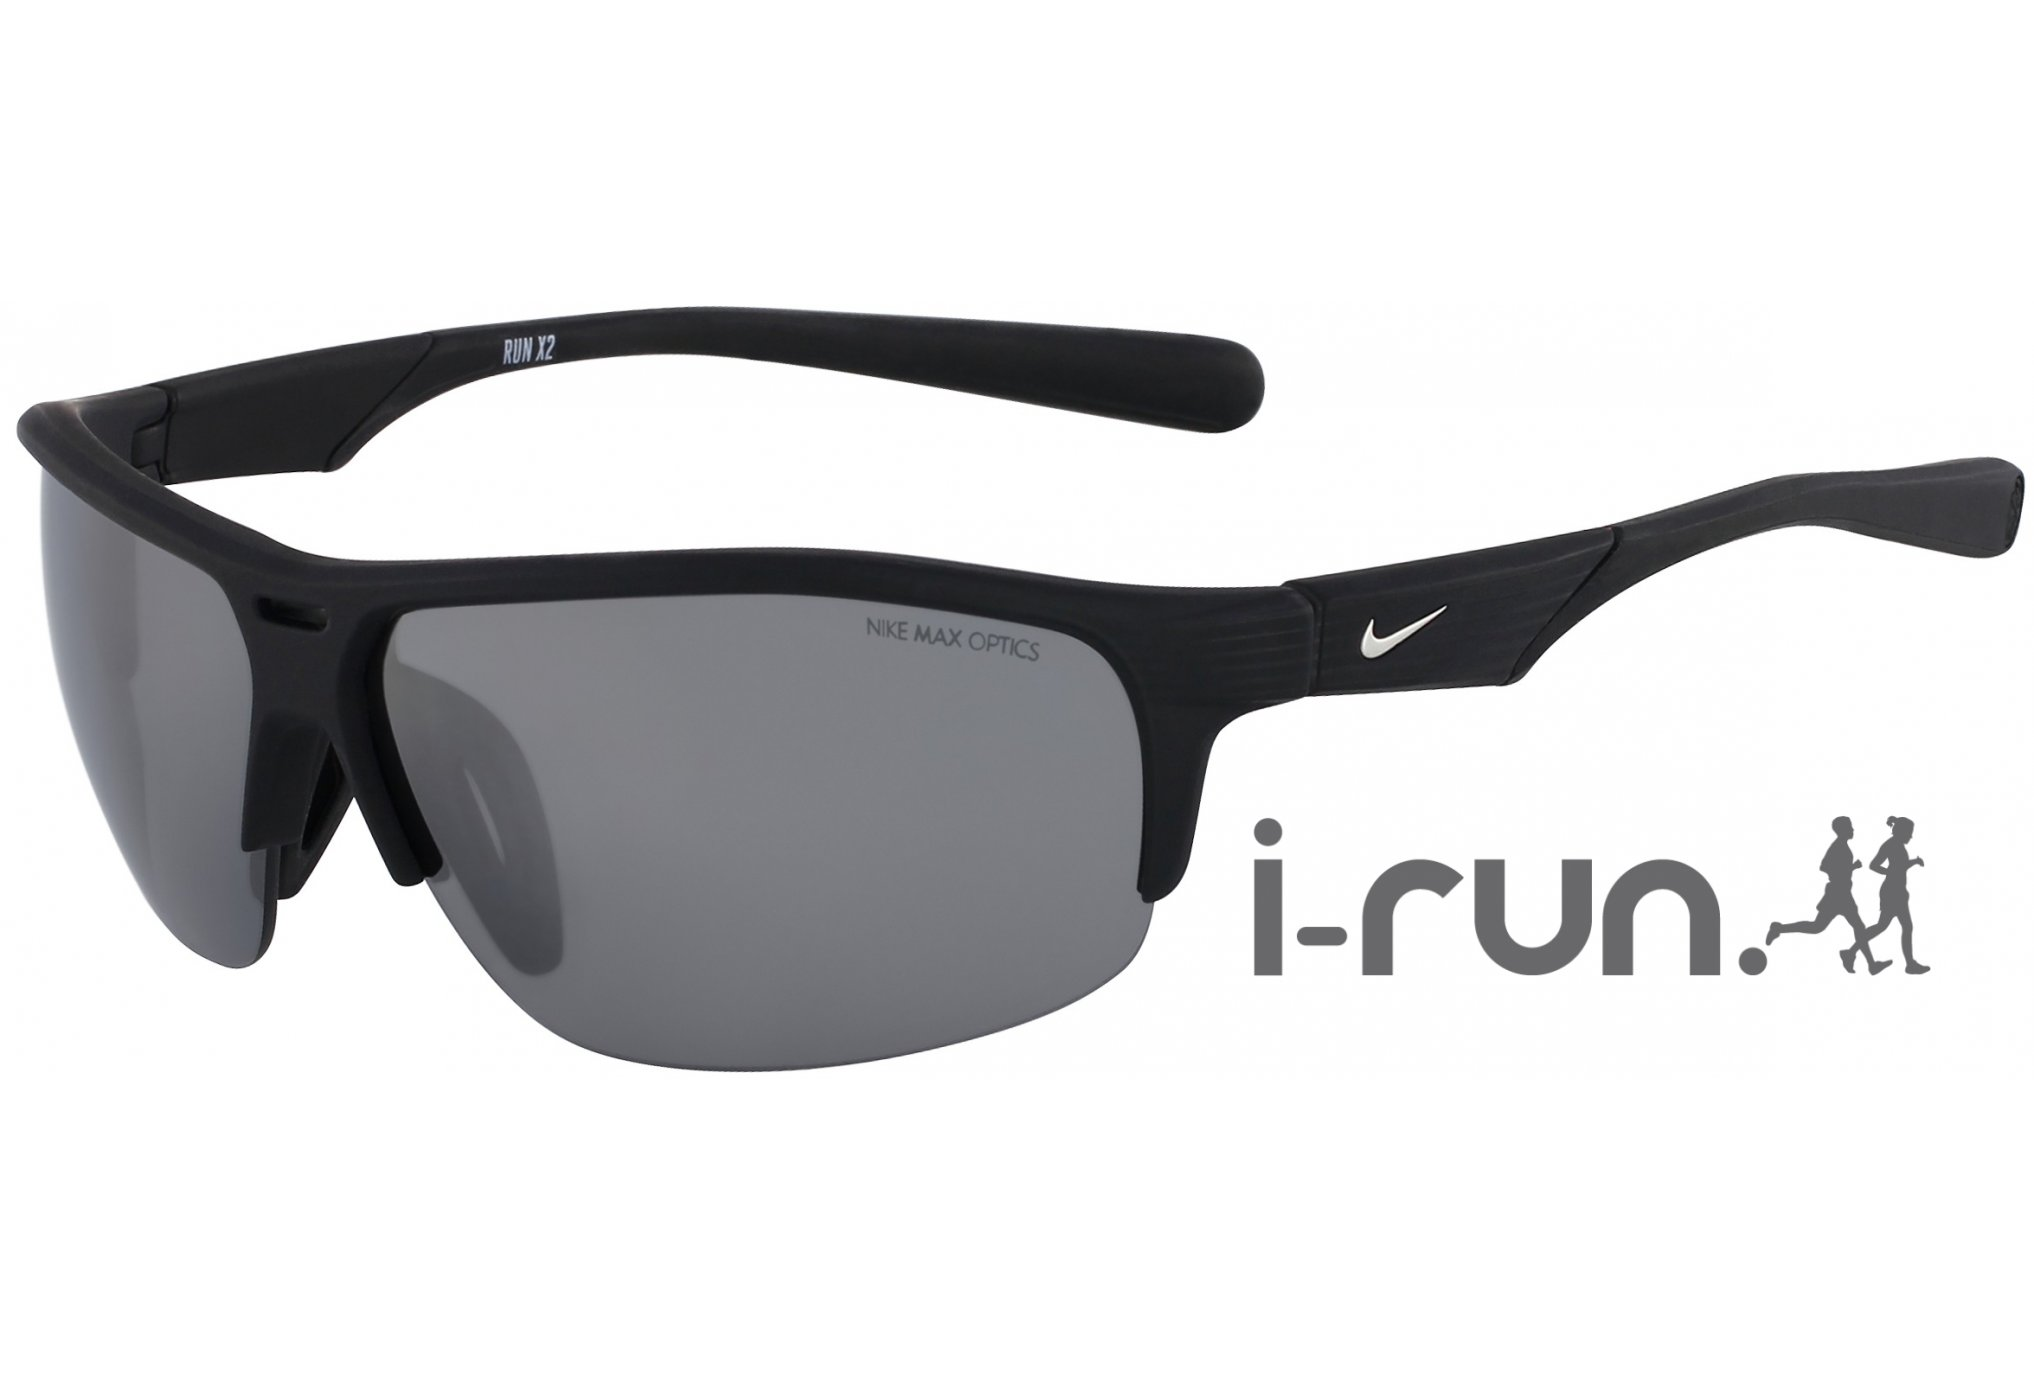 Nike Lunettes Run X2 Lunettes